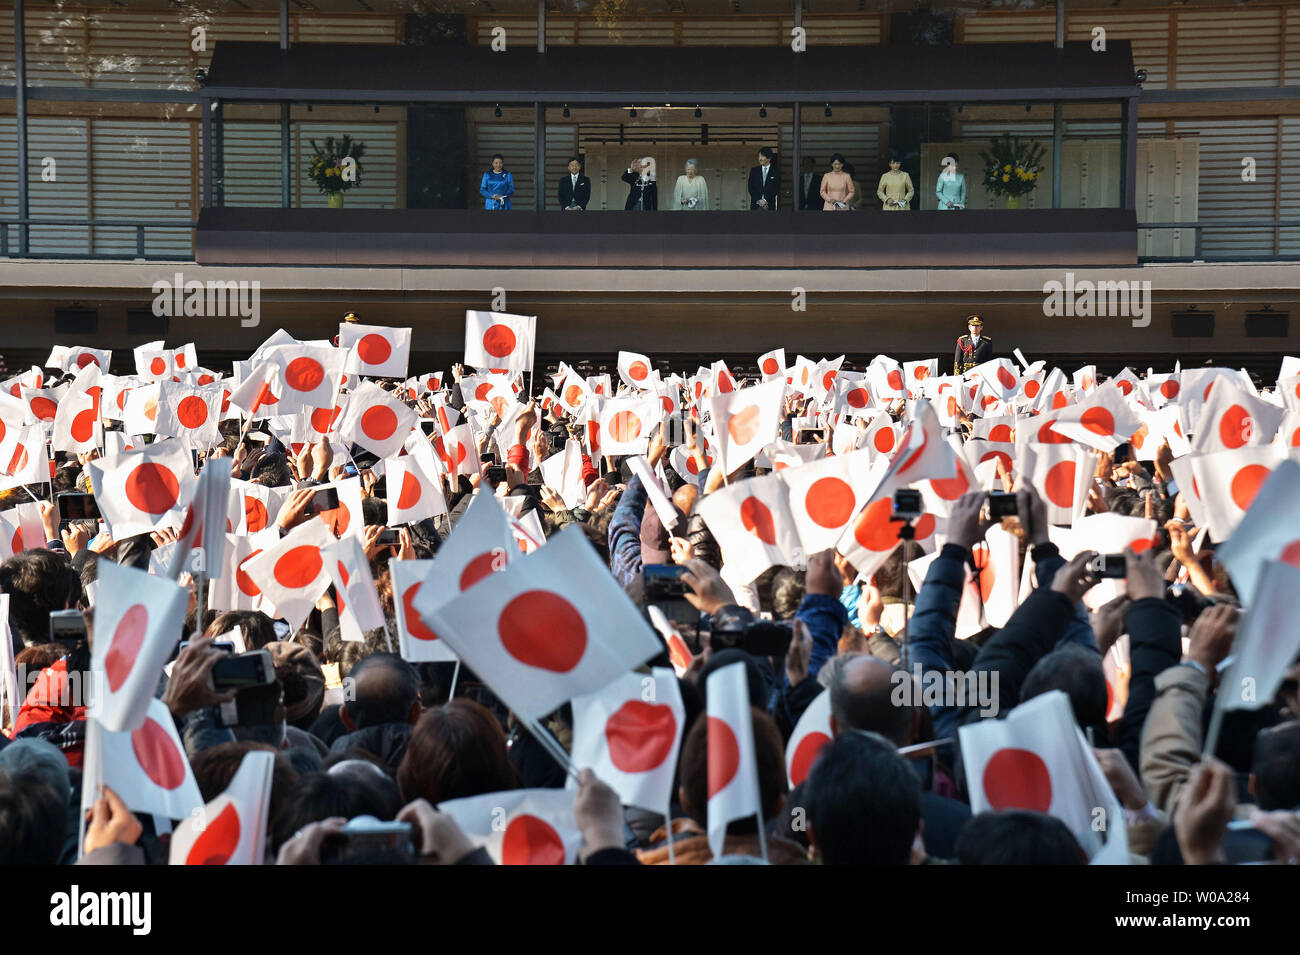 Japan's Emperor Akihito(L3) waves to well-wishers during a new year greeting at the East Plaza, Imperial Palace in Tokyo, Japan, on January 2, 2017.     Photo by Keizo Mori/UPI - Stock Image